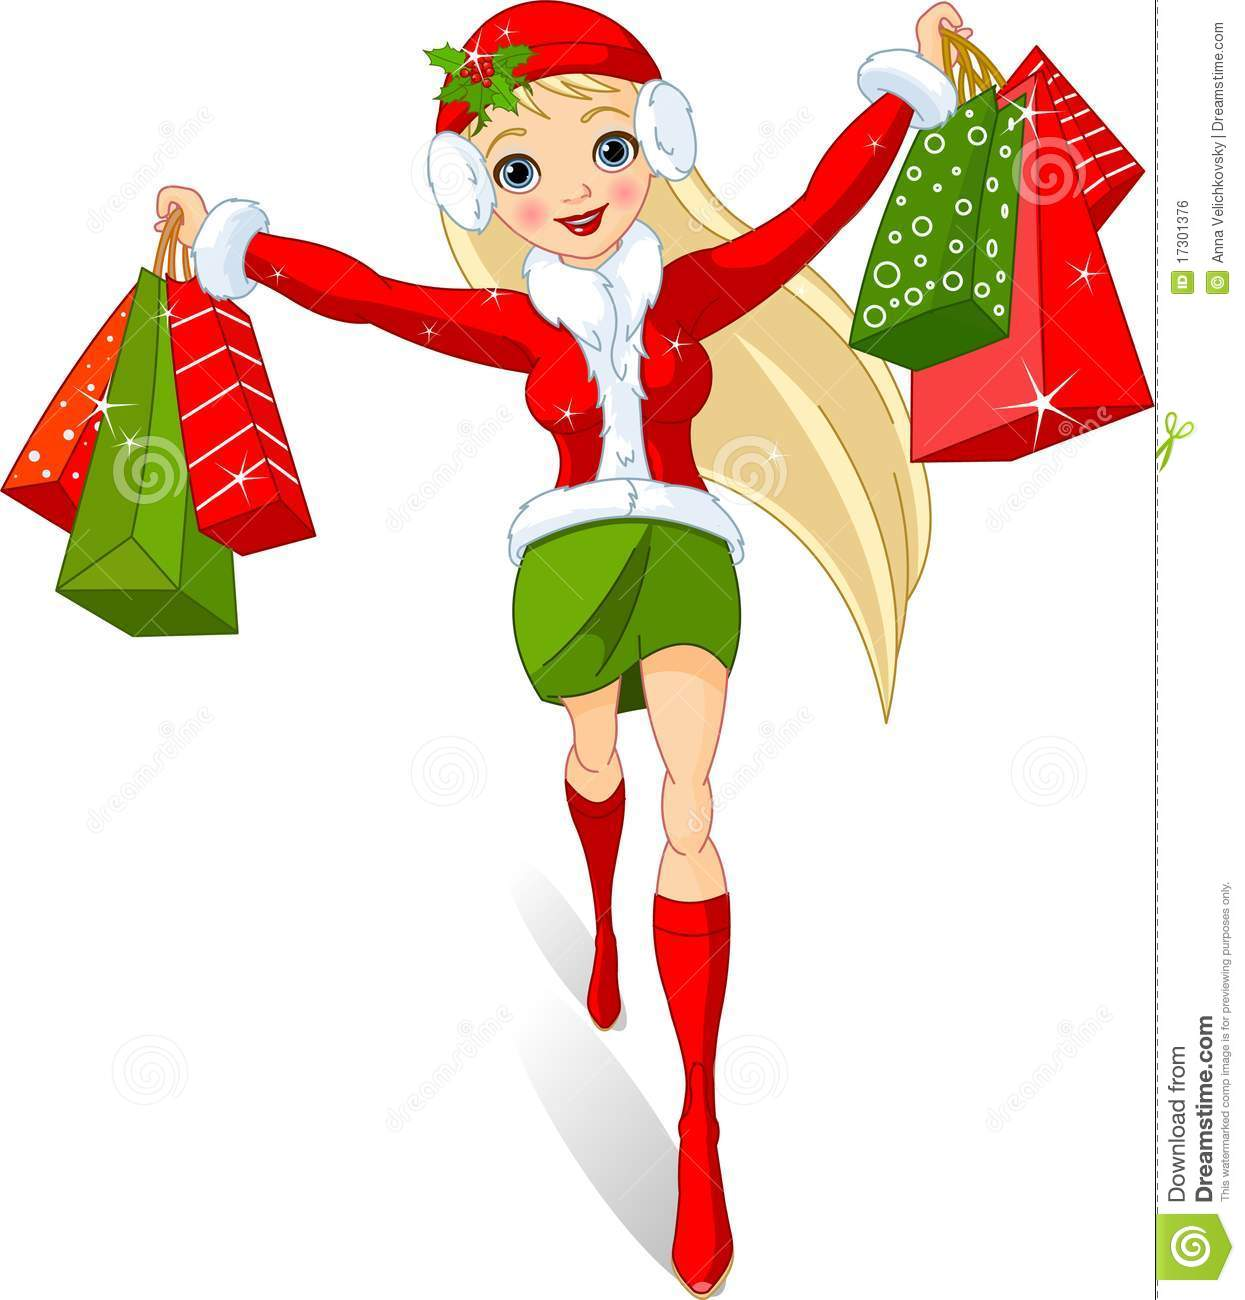 Christmas shopping. Illustration of a girl with shopping bags. Beautiful Fairy Pictures